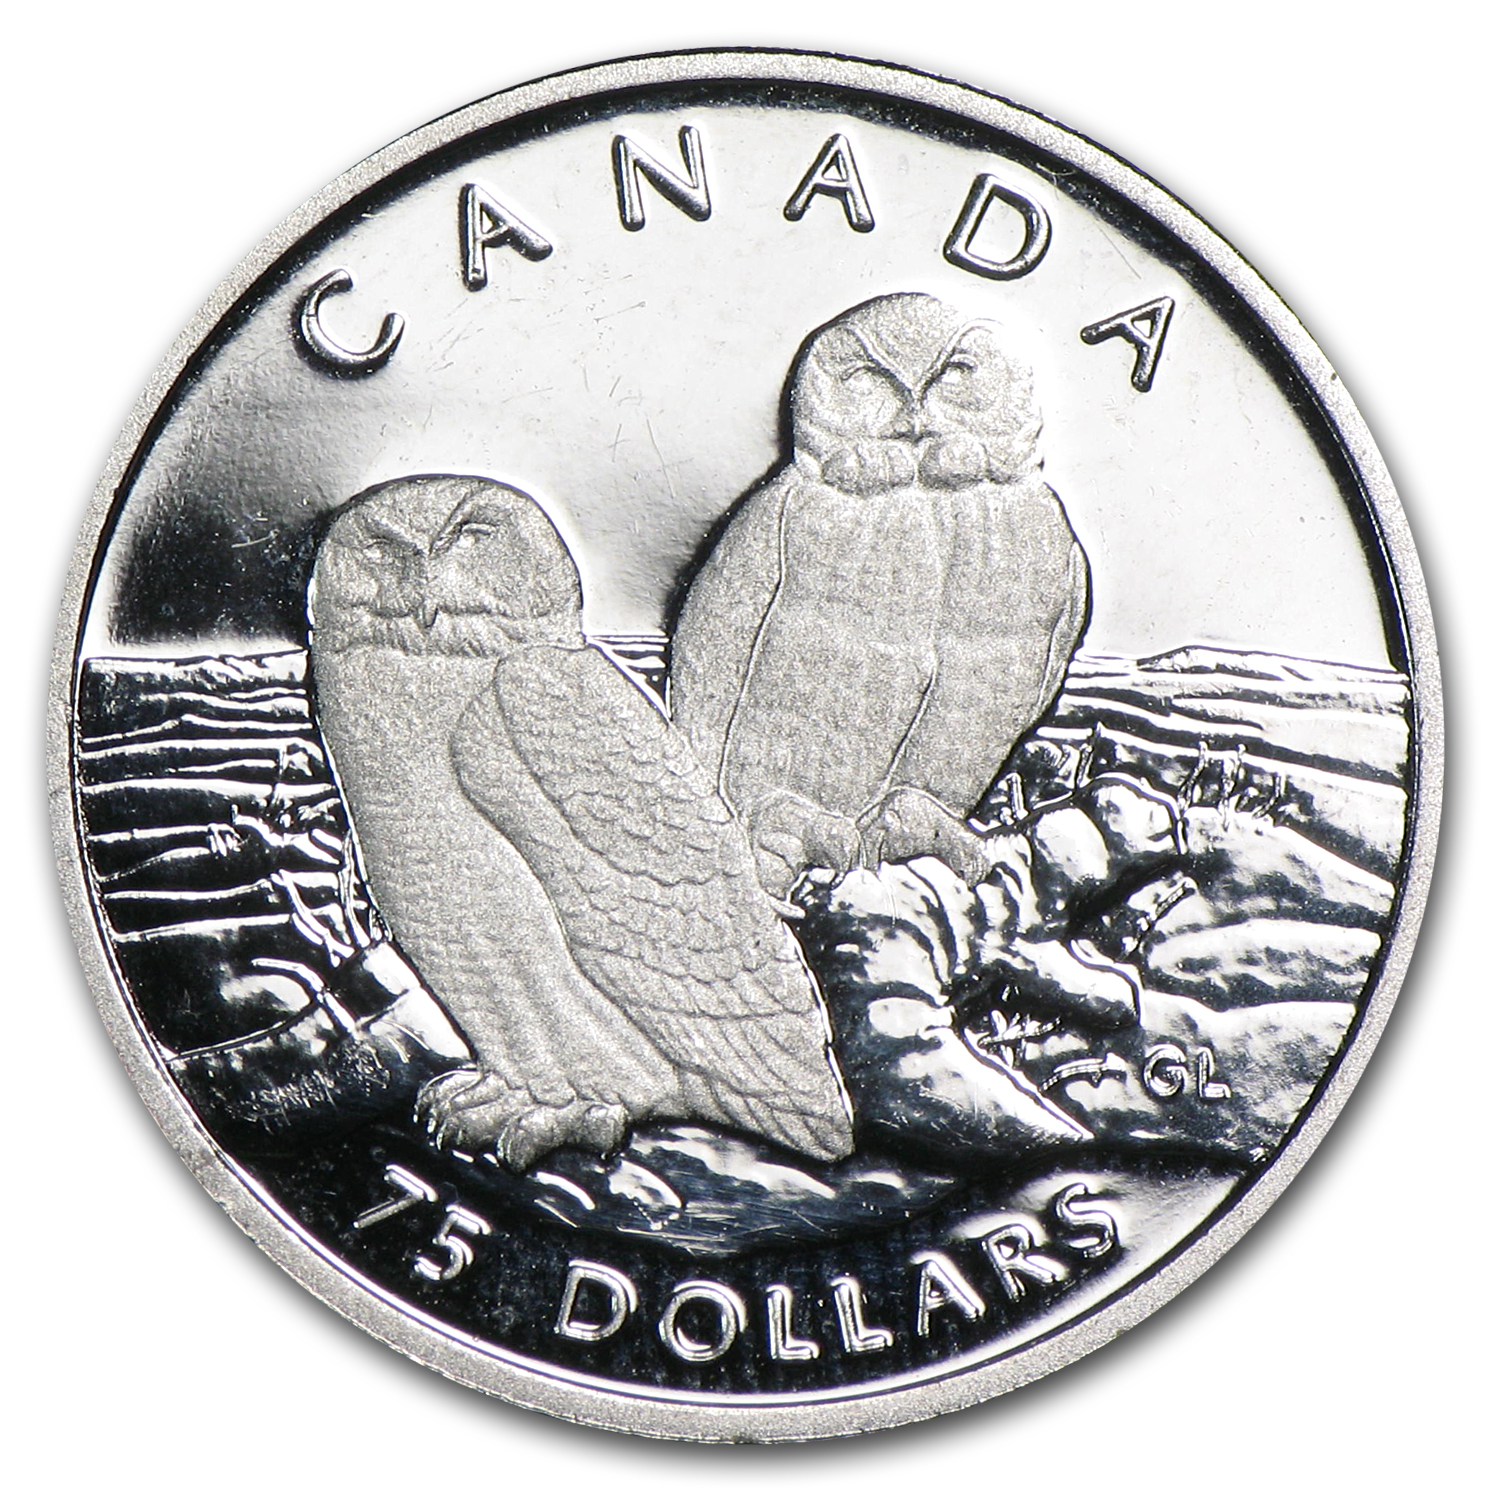 1991 1/4 oz Canadian Platinum Snowy Owl (Proof)